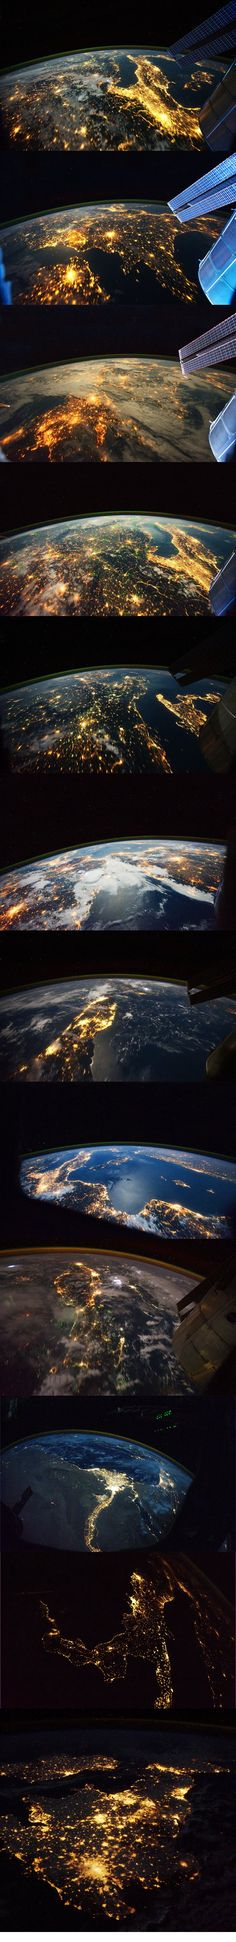 #Earth at #night. #space